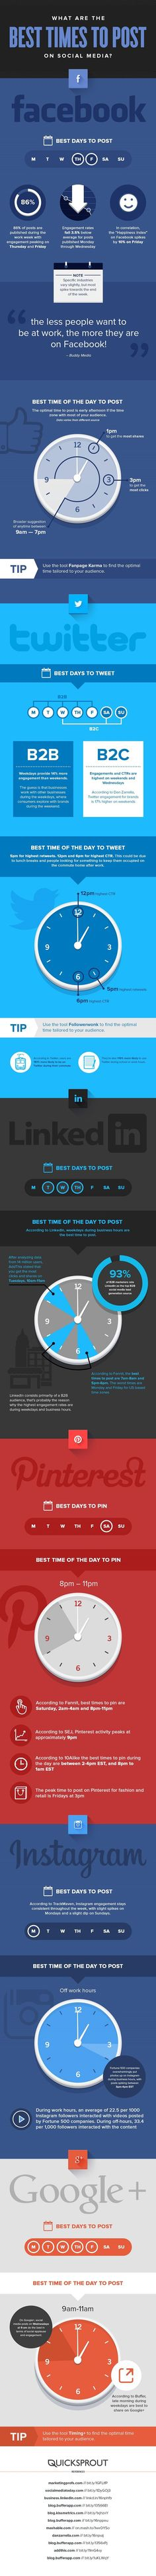 Wat zijn de beste tijden om te posten op Social Media? / What are the beste times to post on Social Media [Infographic]